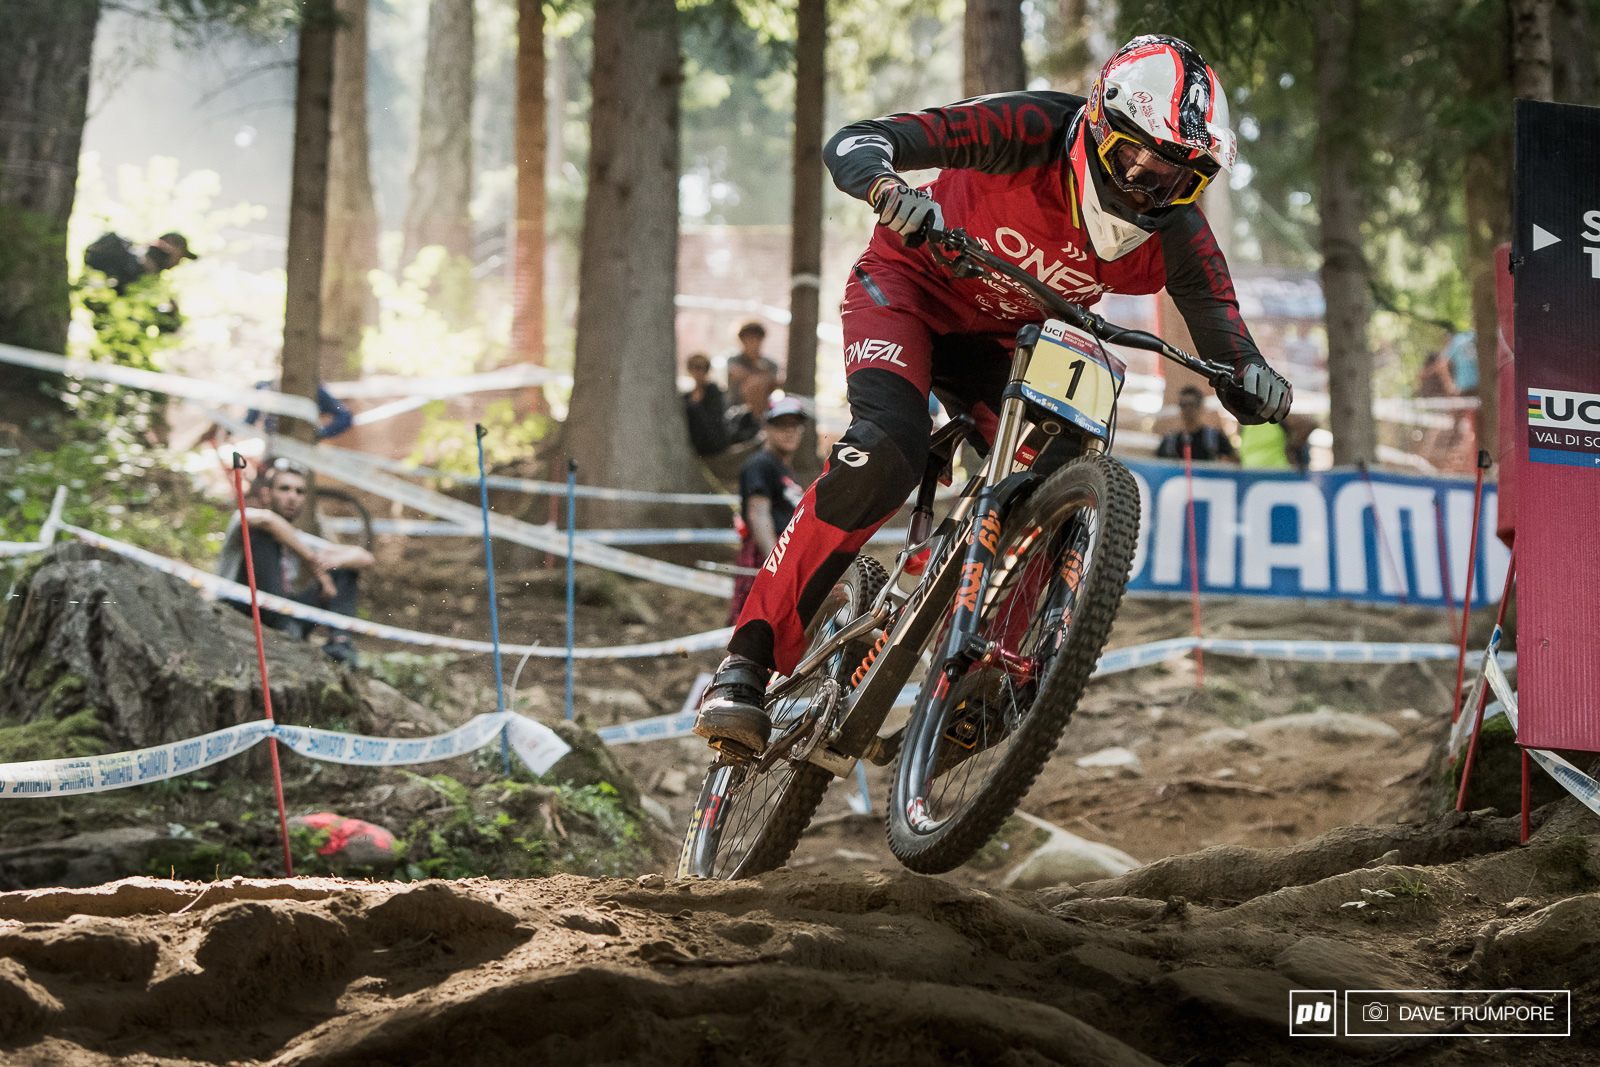 Greg Minnaar was looking like the man to beat in practice but Val di Sole can be a cruel cruel place.